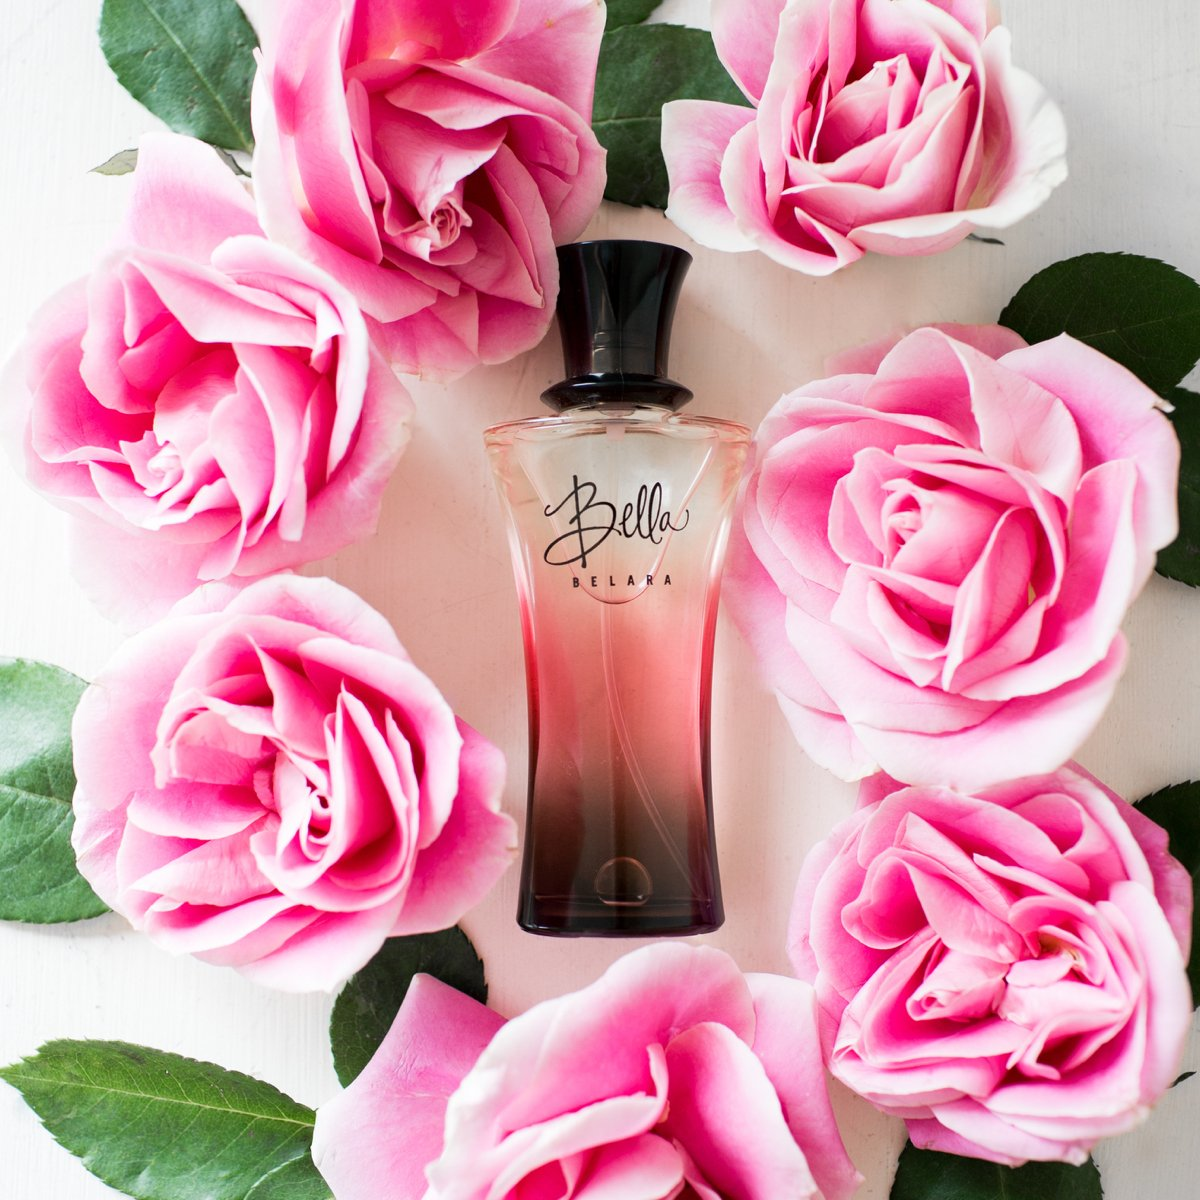 Mary kay inc on twitter need a friday fragrance bella belara never miss a moment izmirmasajfo